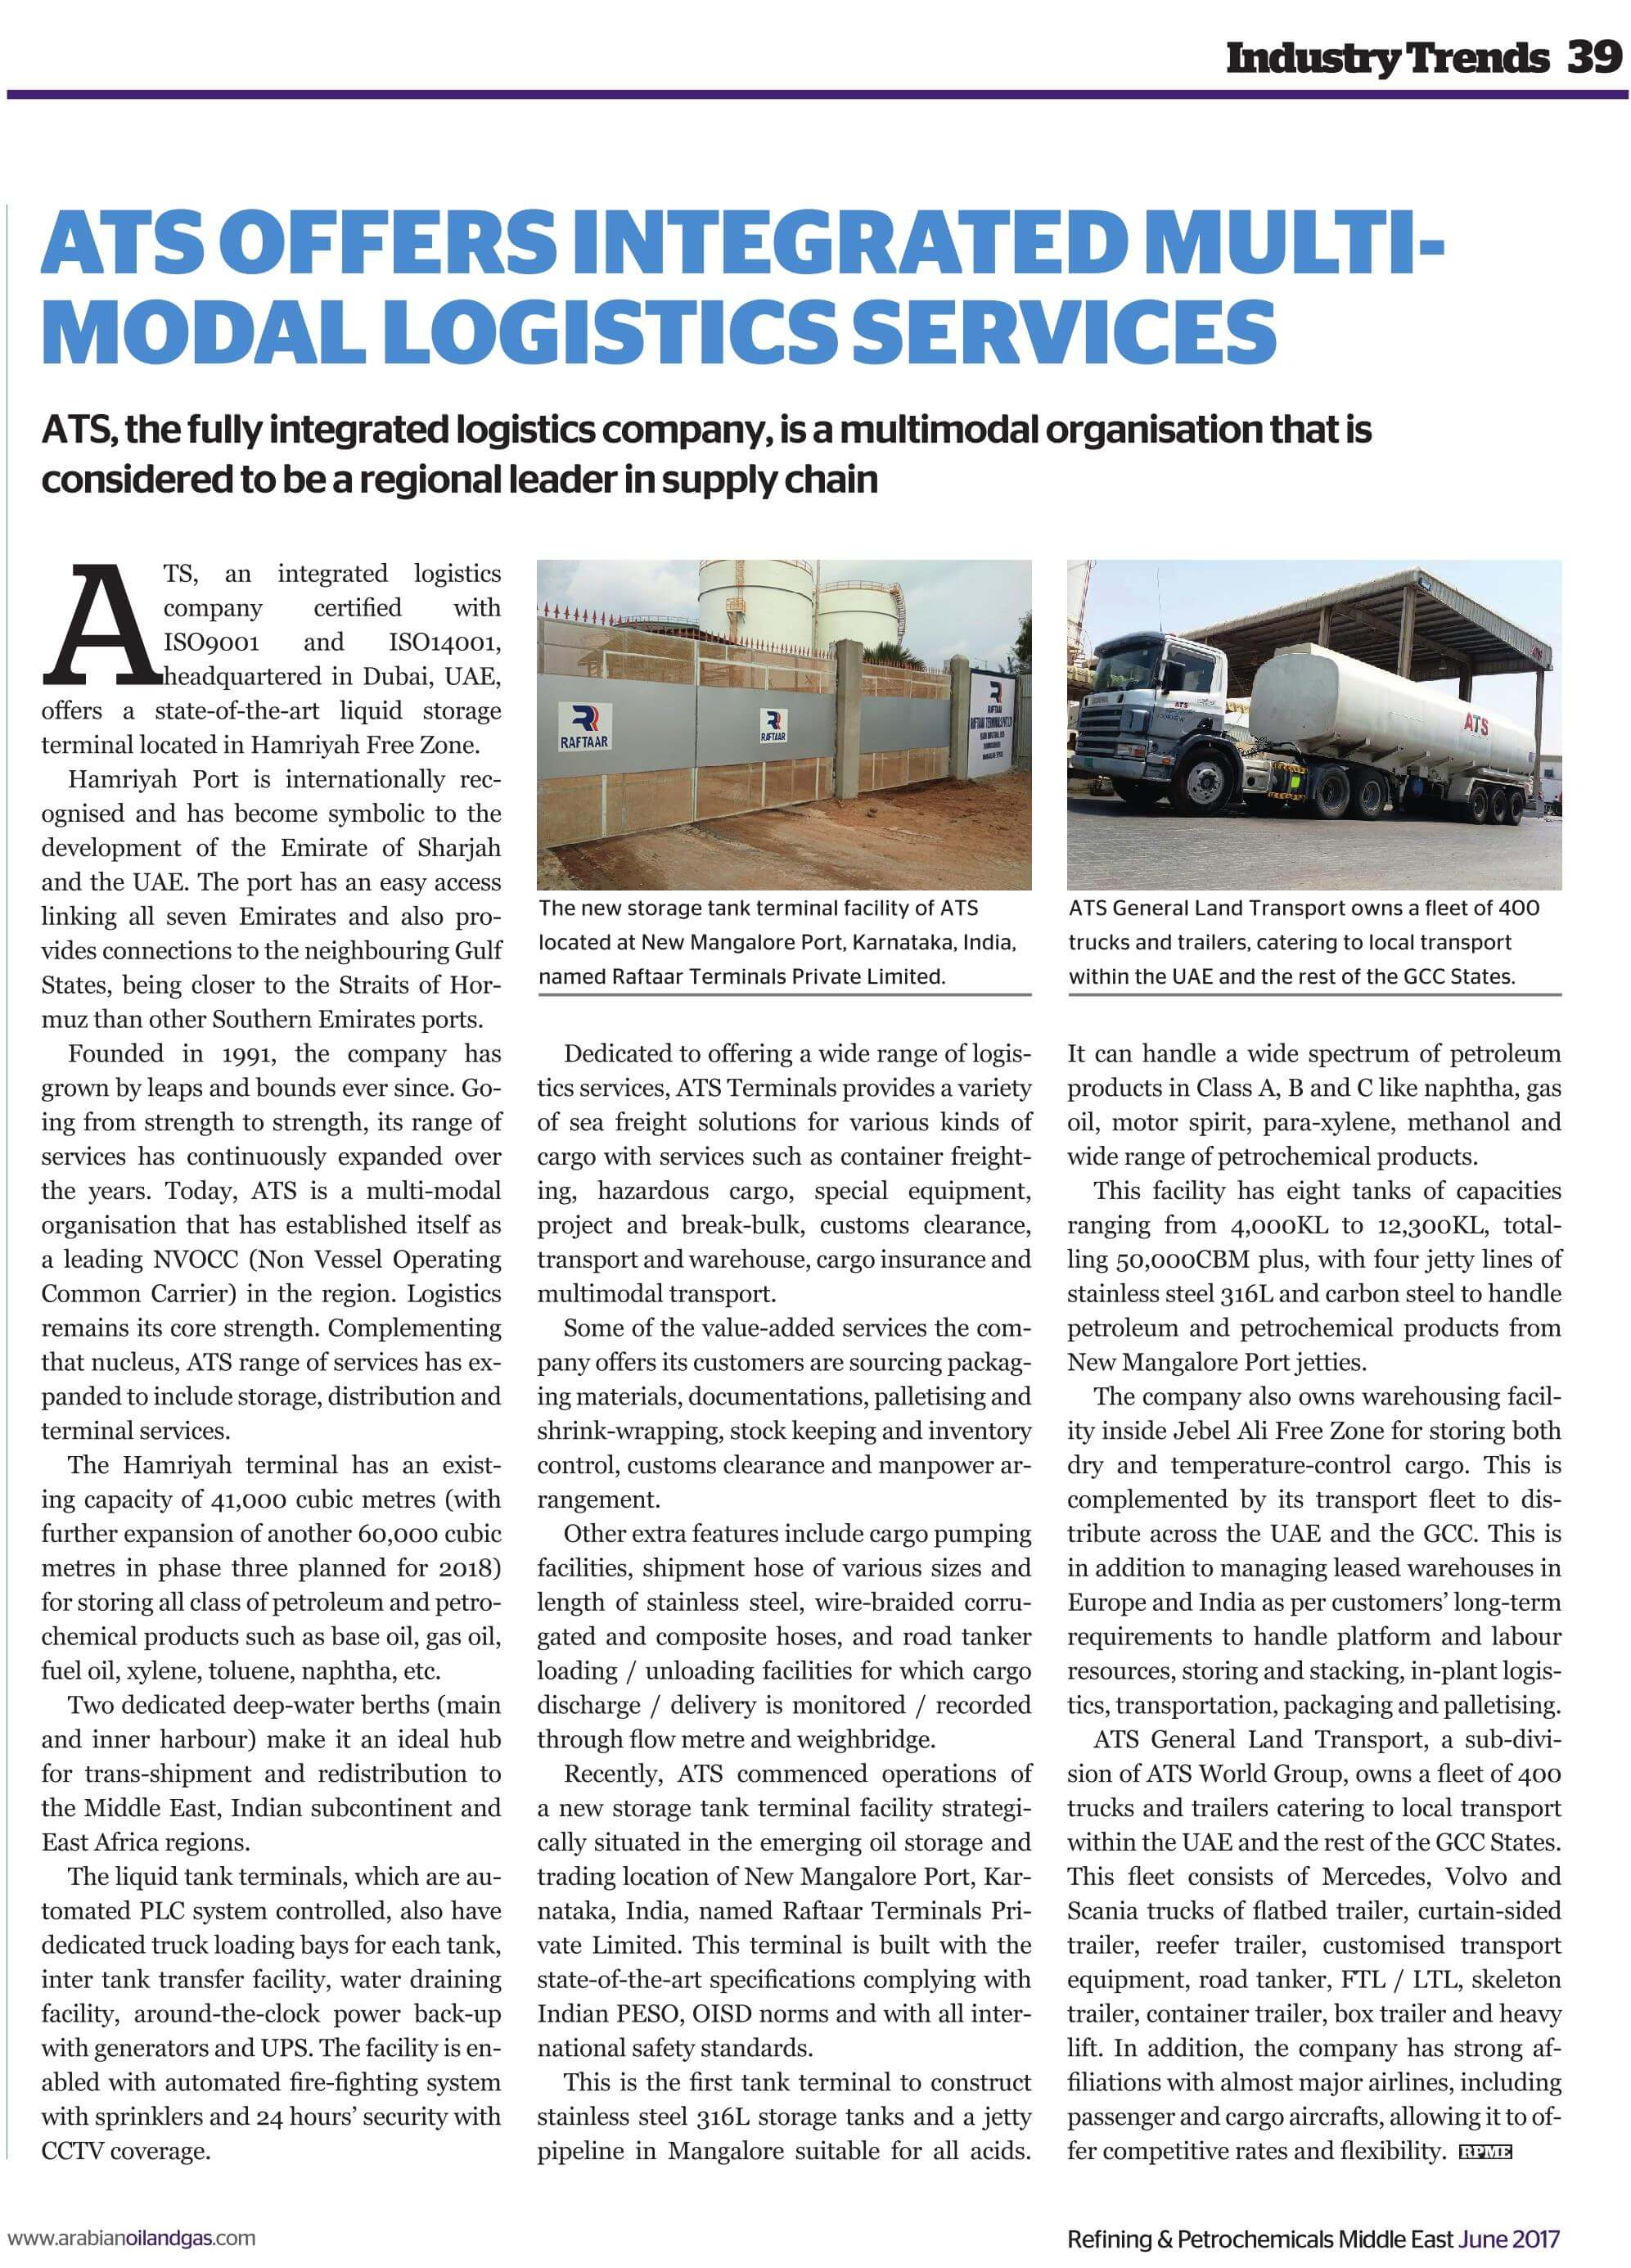 ATS OFFERS INTEGRATED MULTI-MODAL LOGISTICS SERVICES – ATS